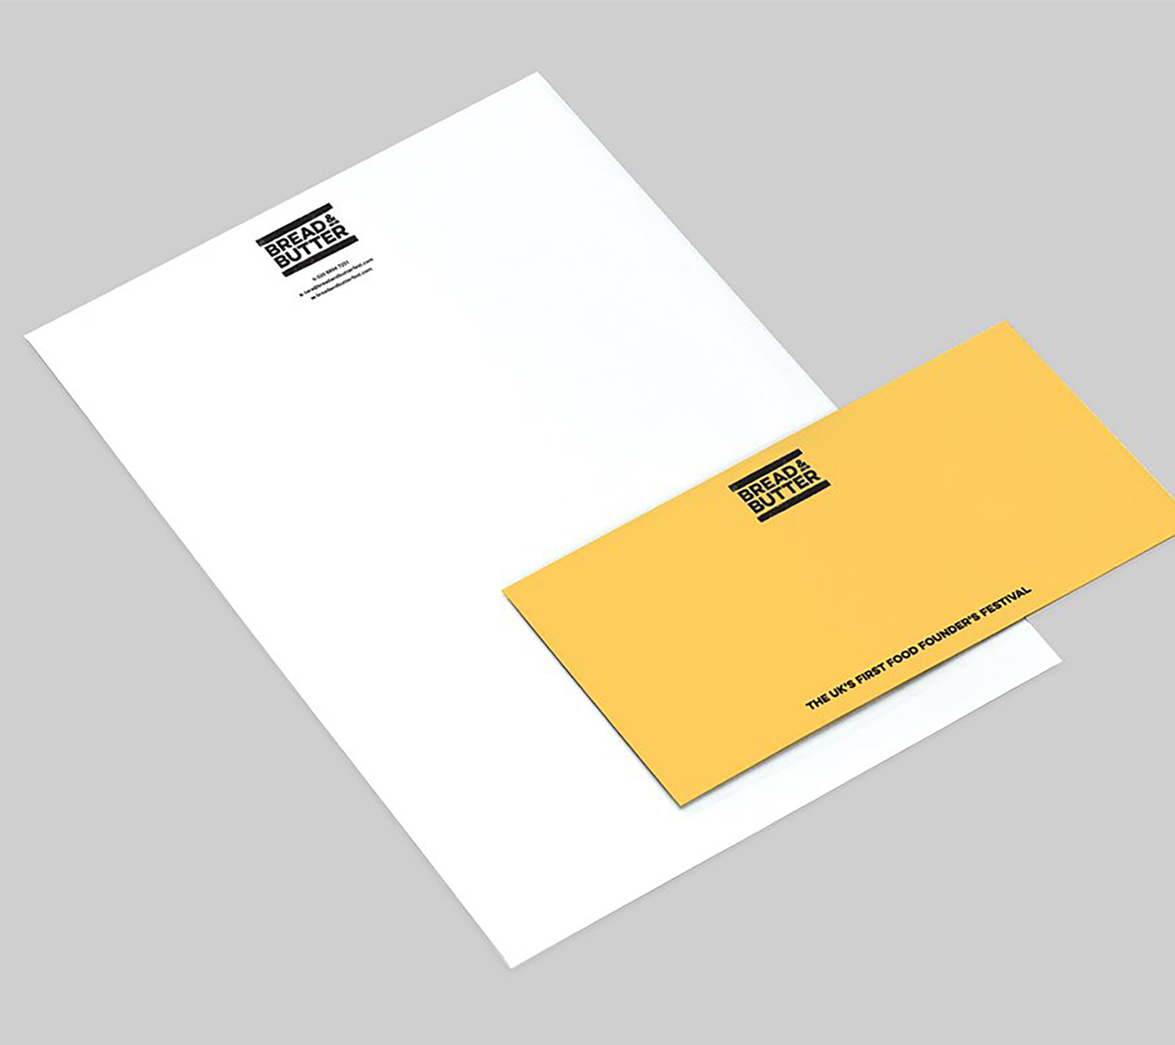 Stationery for food startup Bread and Butter, designed by White Bear Studio